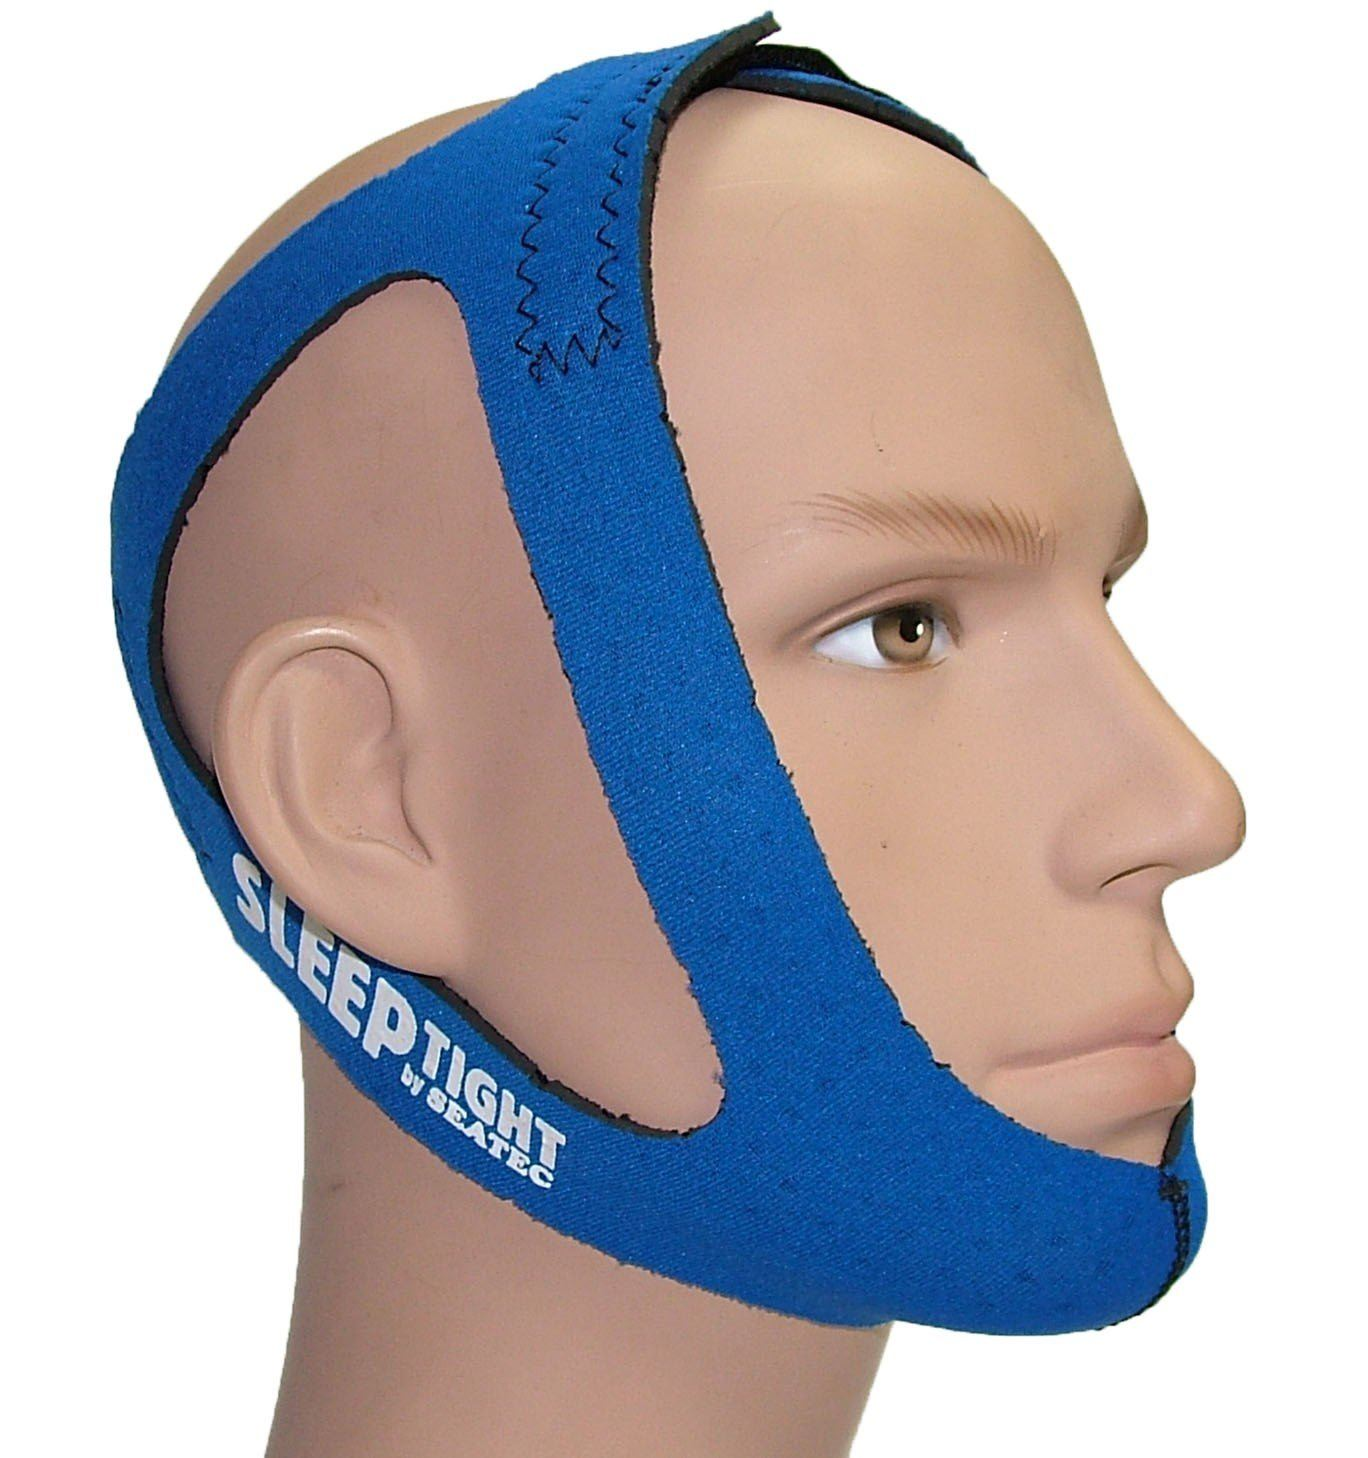 Seatec SleepTight Chinstrap Accessories Philips